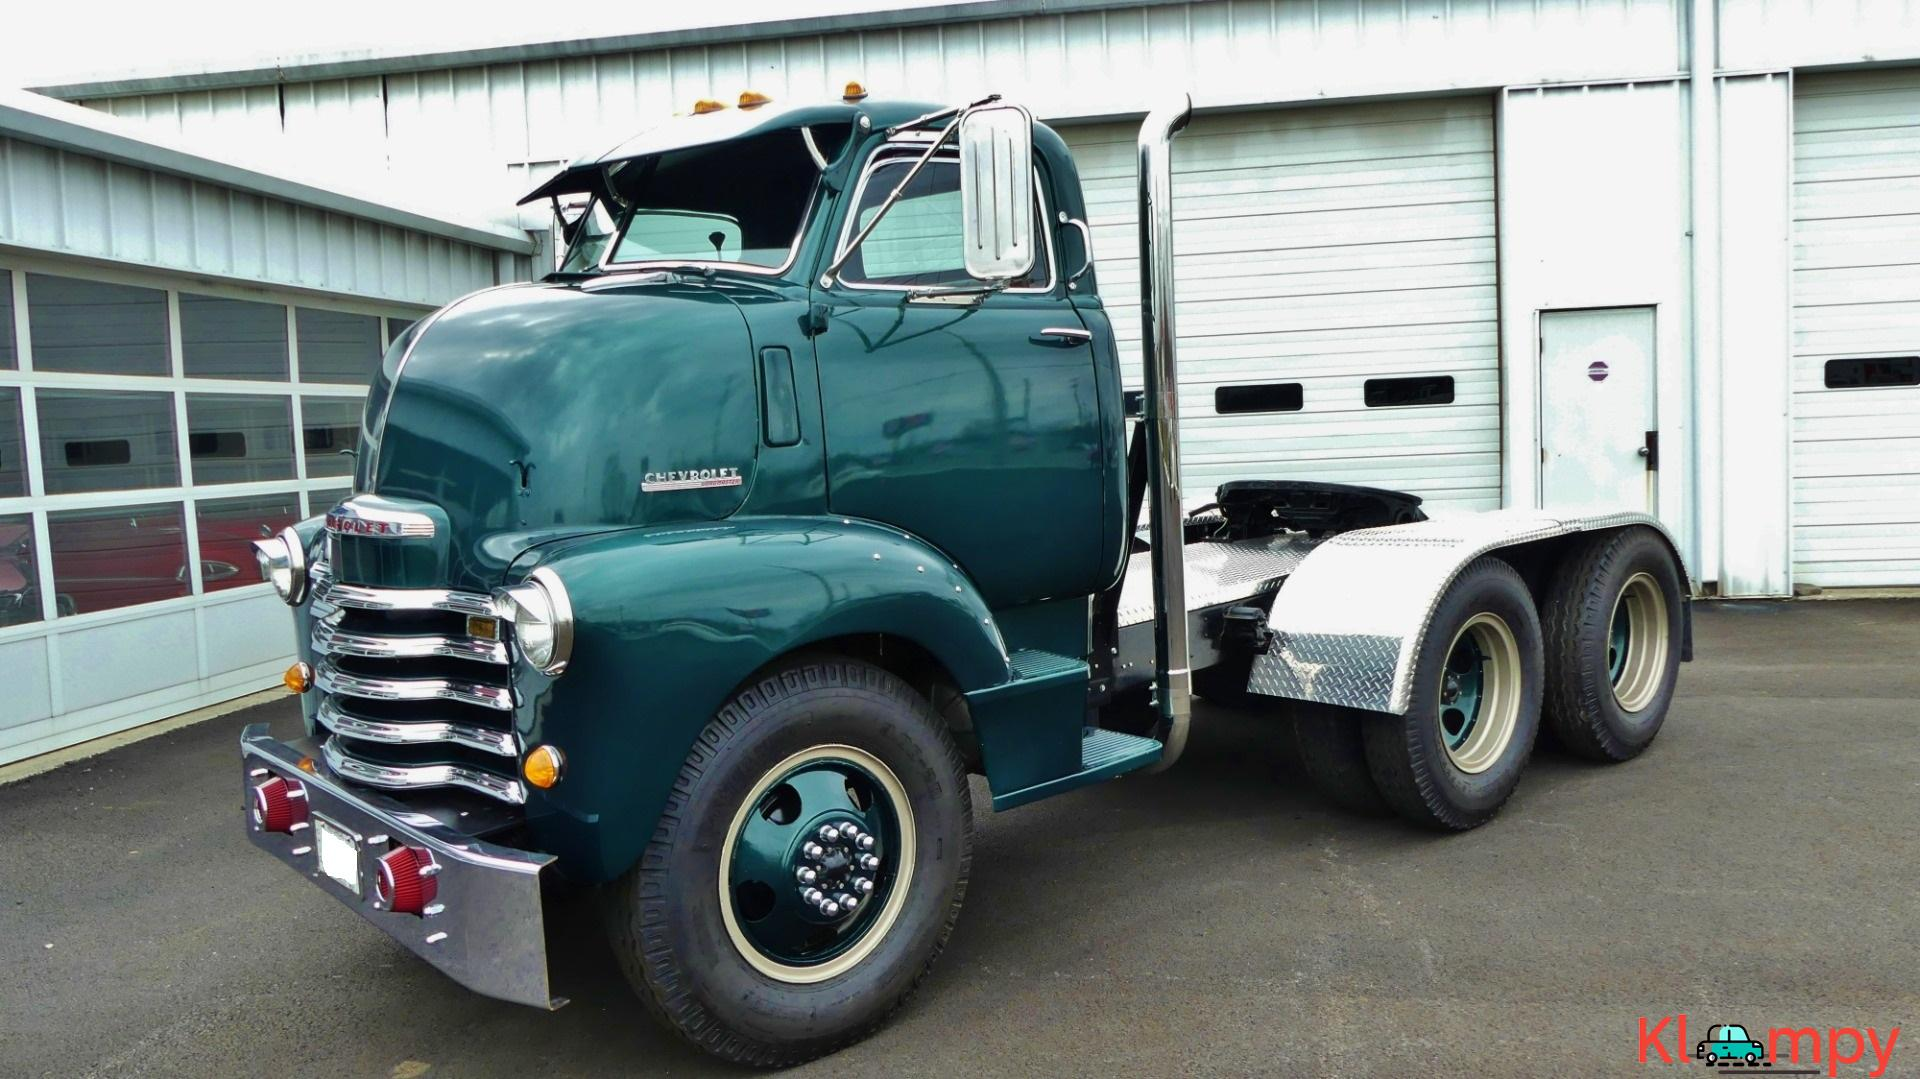 1948 Chevrolet Other Pickups 350 Automatic - 1/22